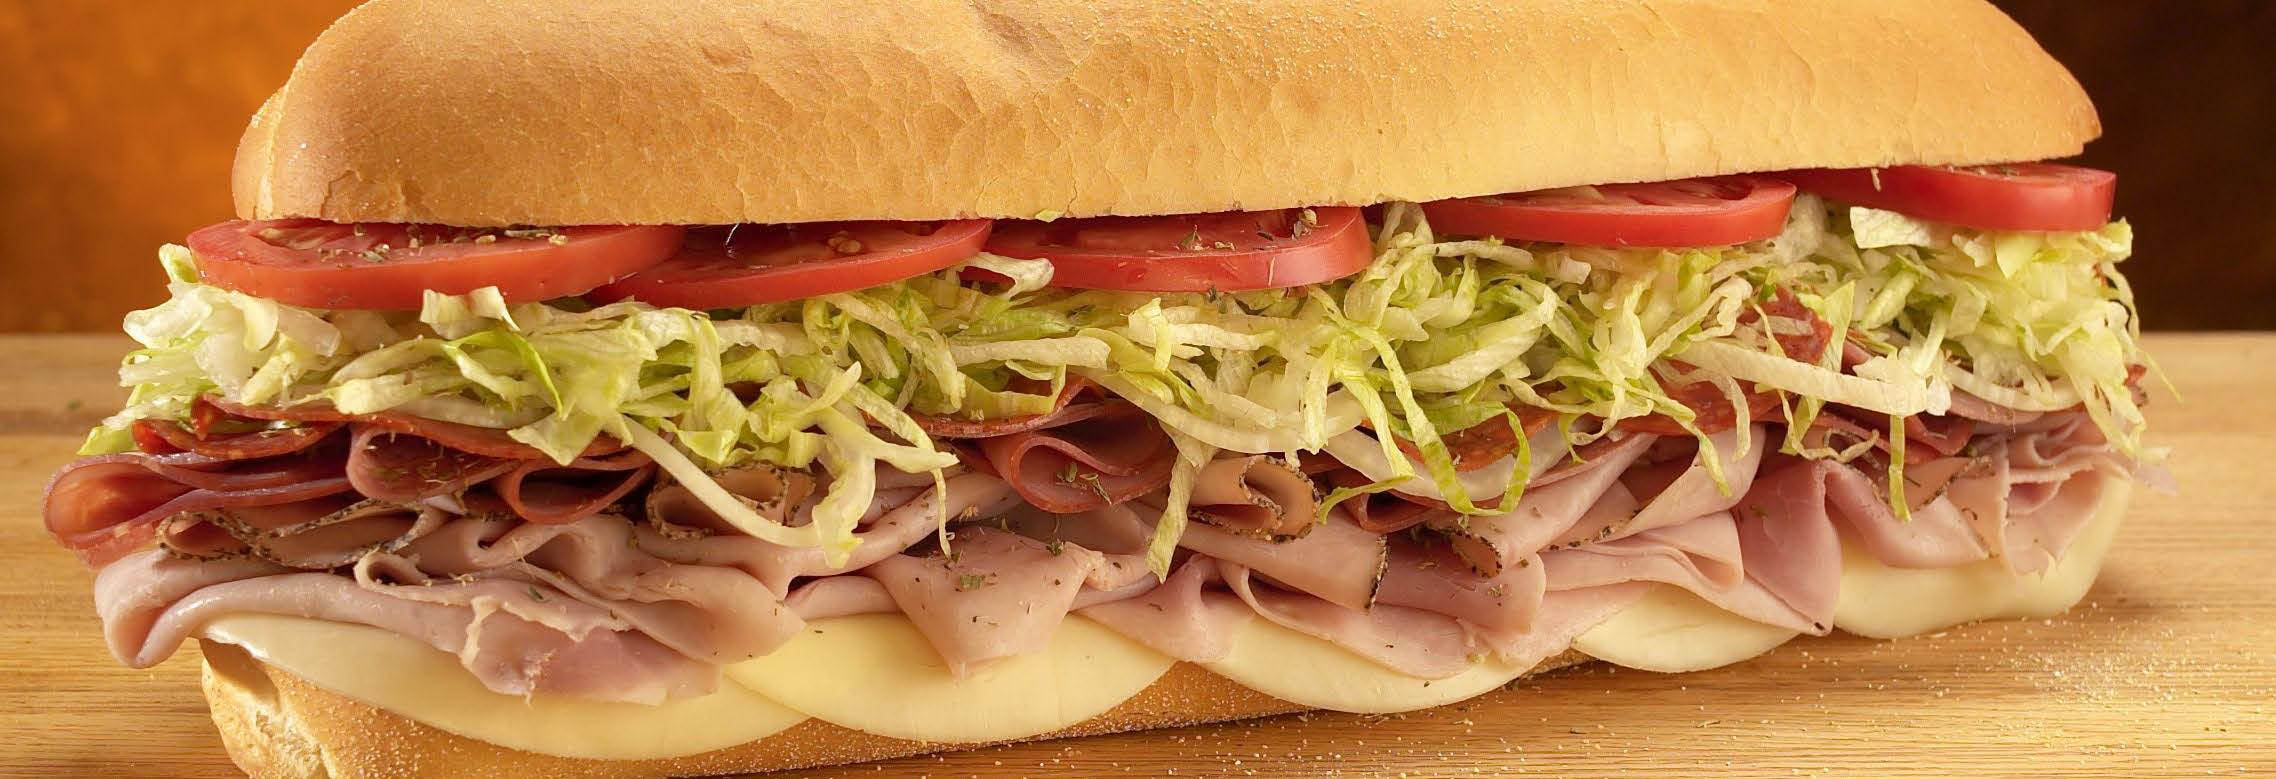 jersey mike's, subs, cheese steak, a sub above, oven fresh bread, roast beef